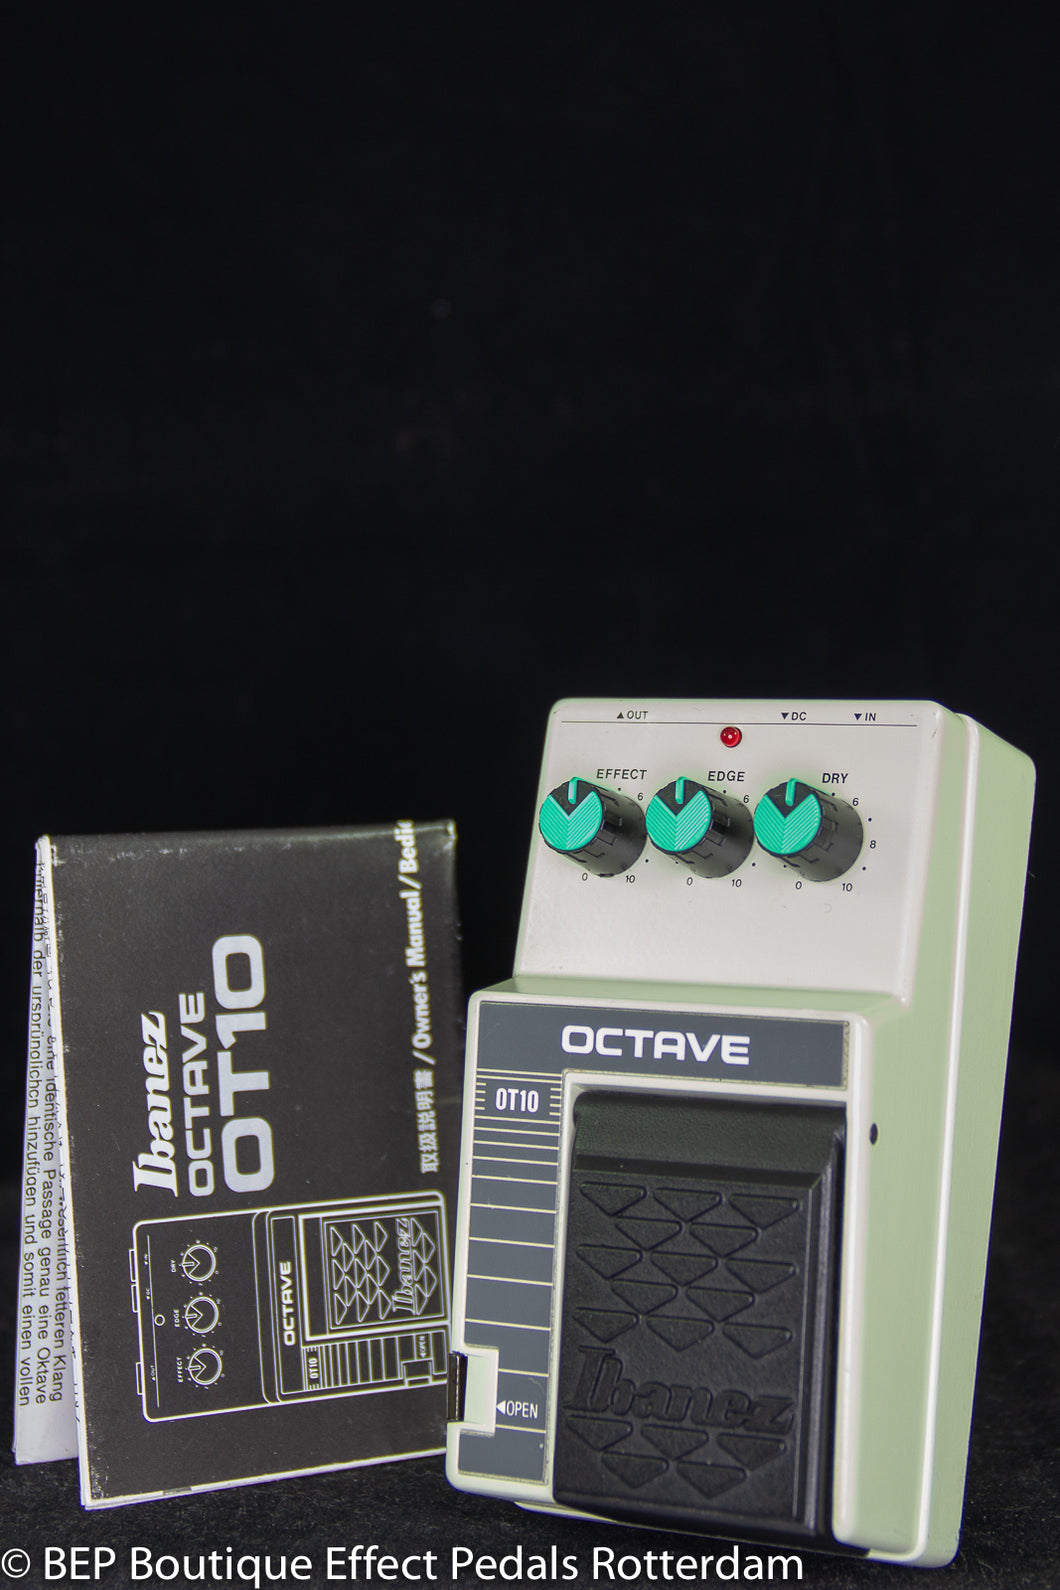 Ibanez OT-10 Octave s/n 436291 mid 80's Japan